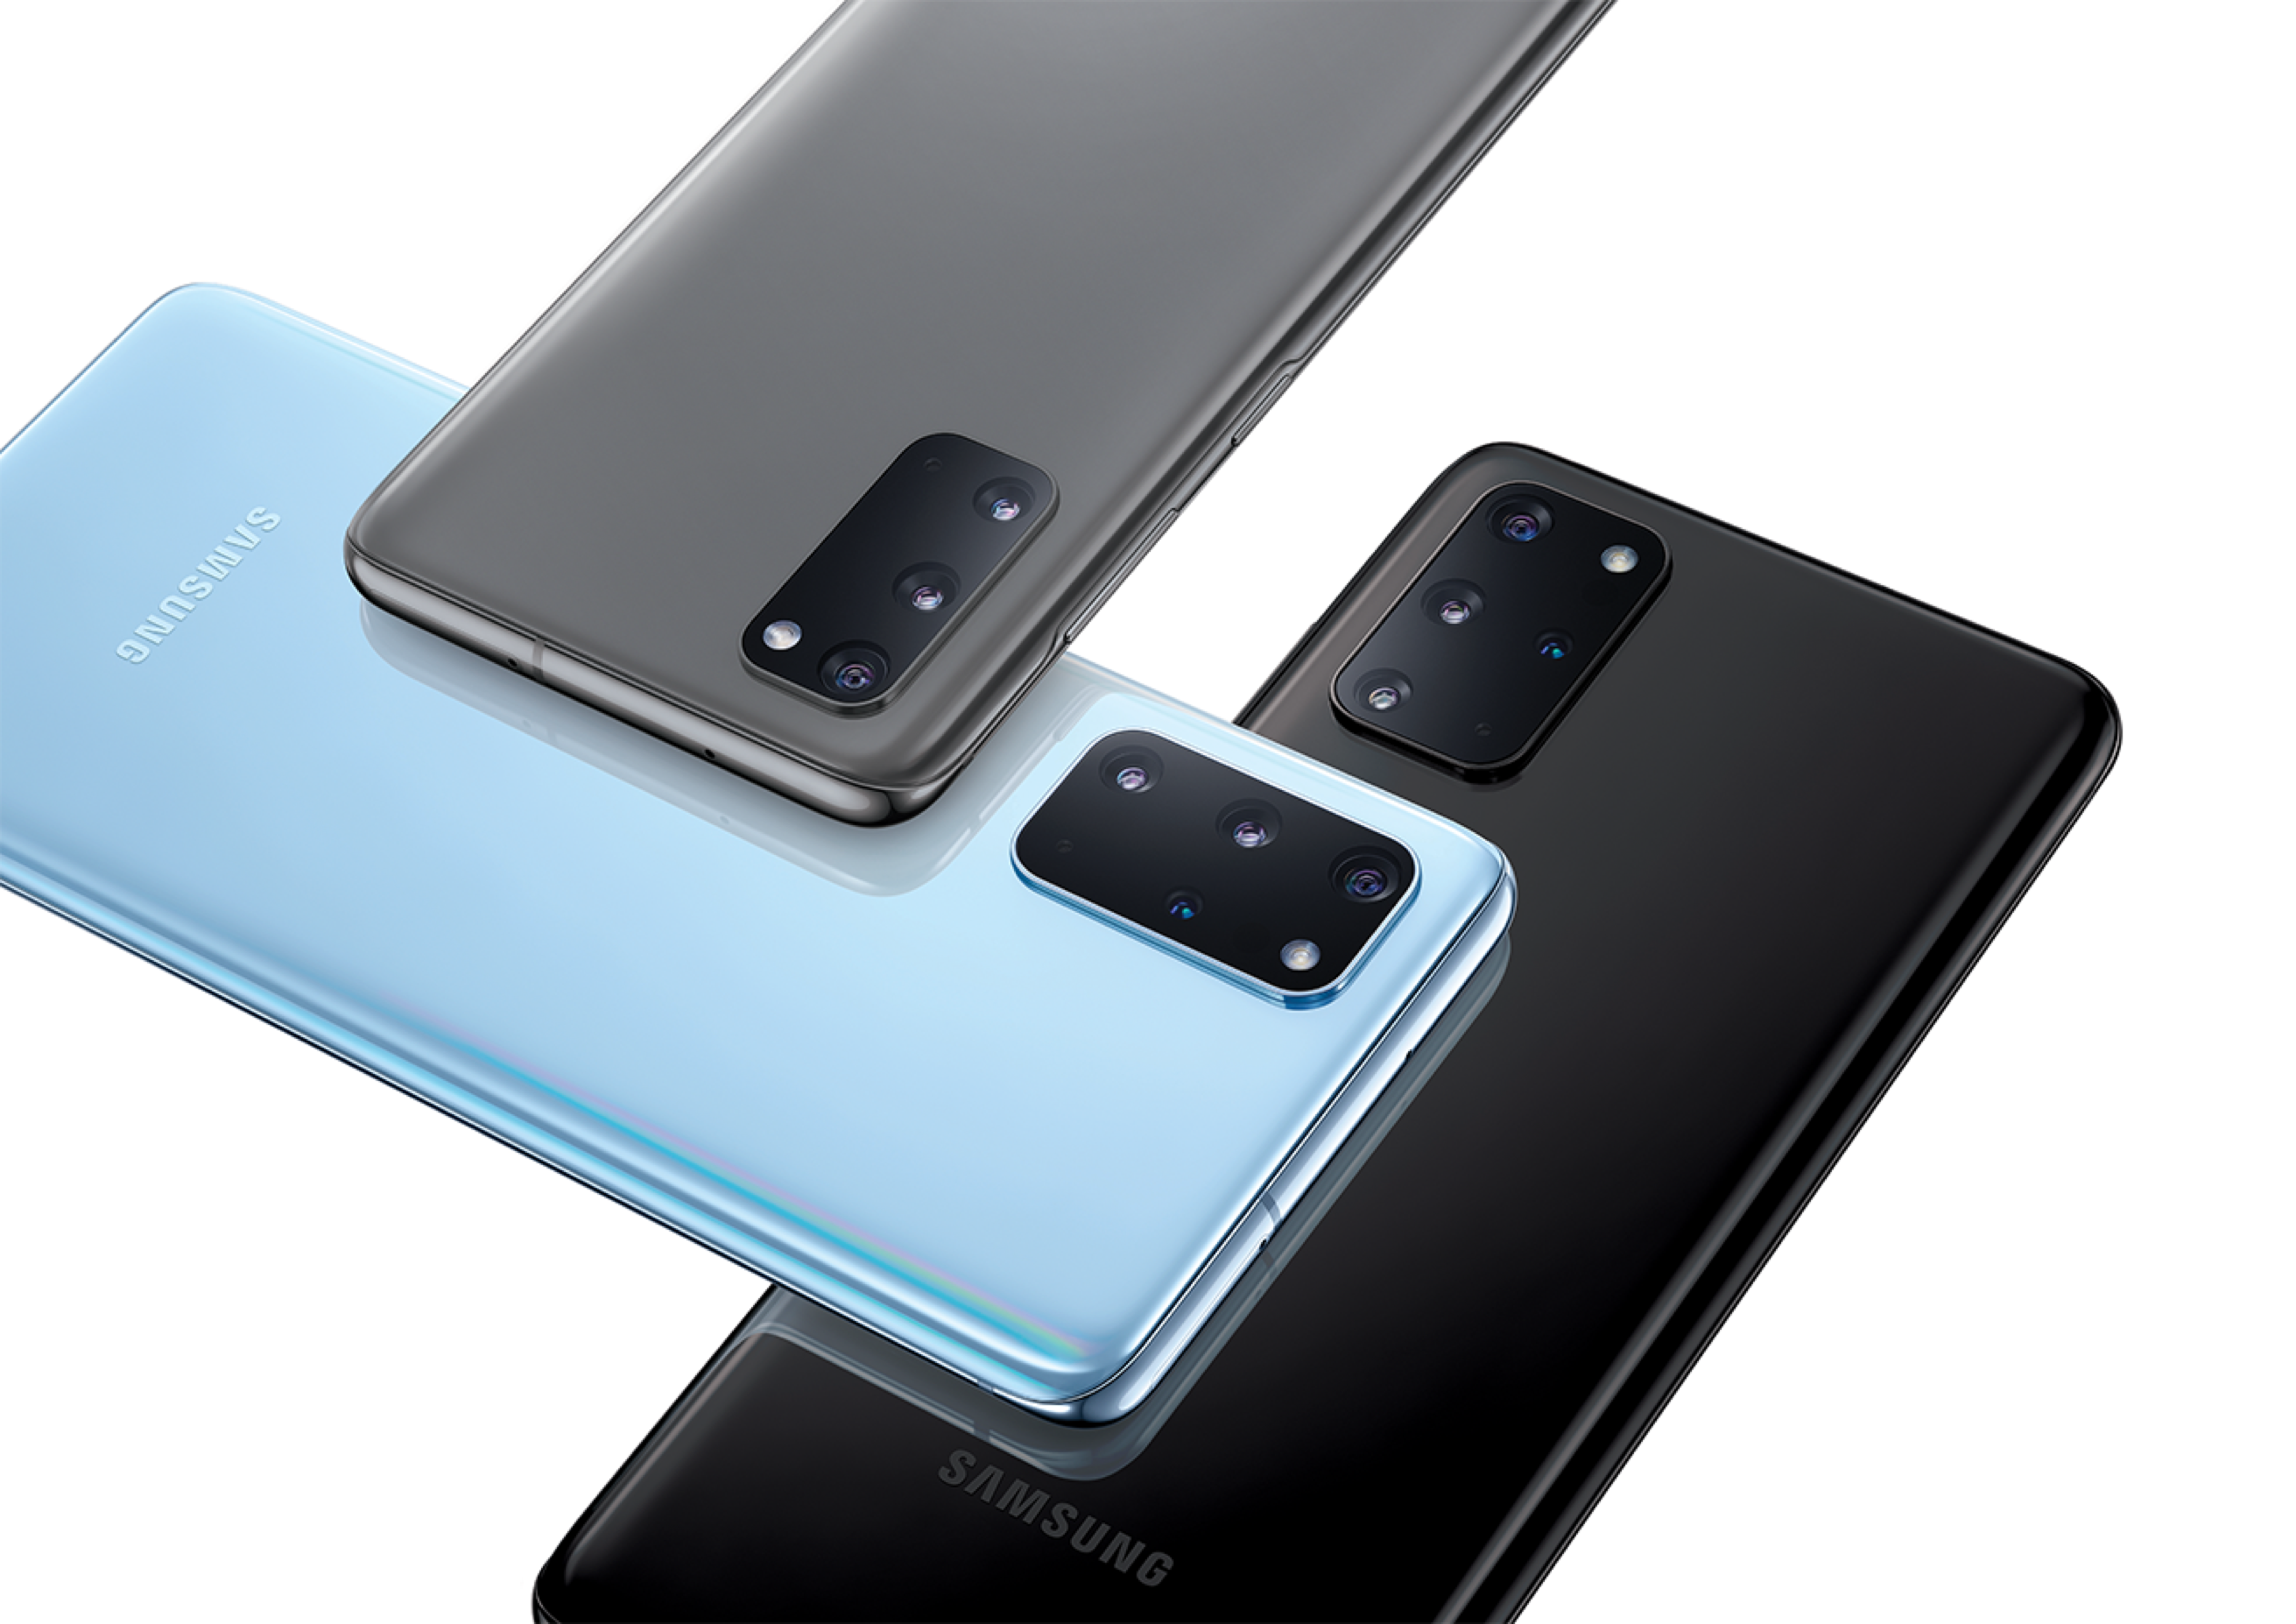 The Samsung S20 5G family of smartphones